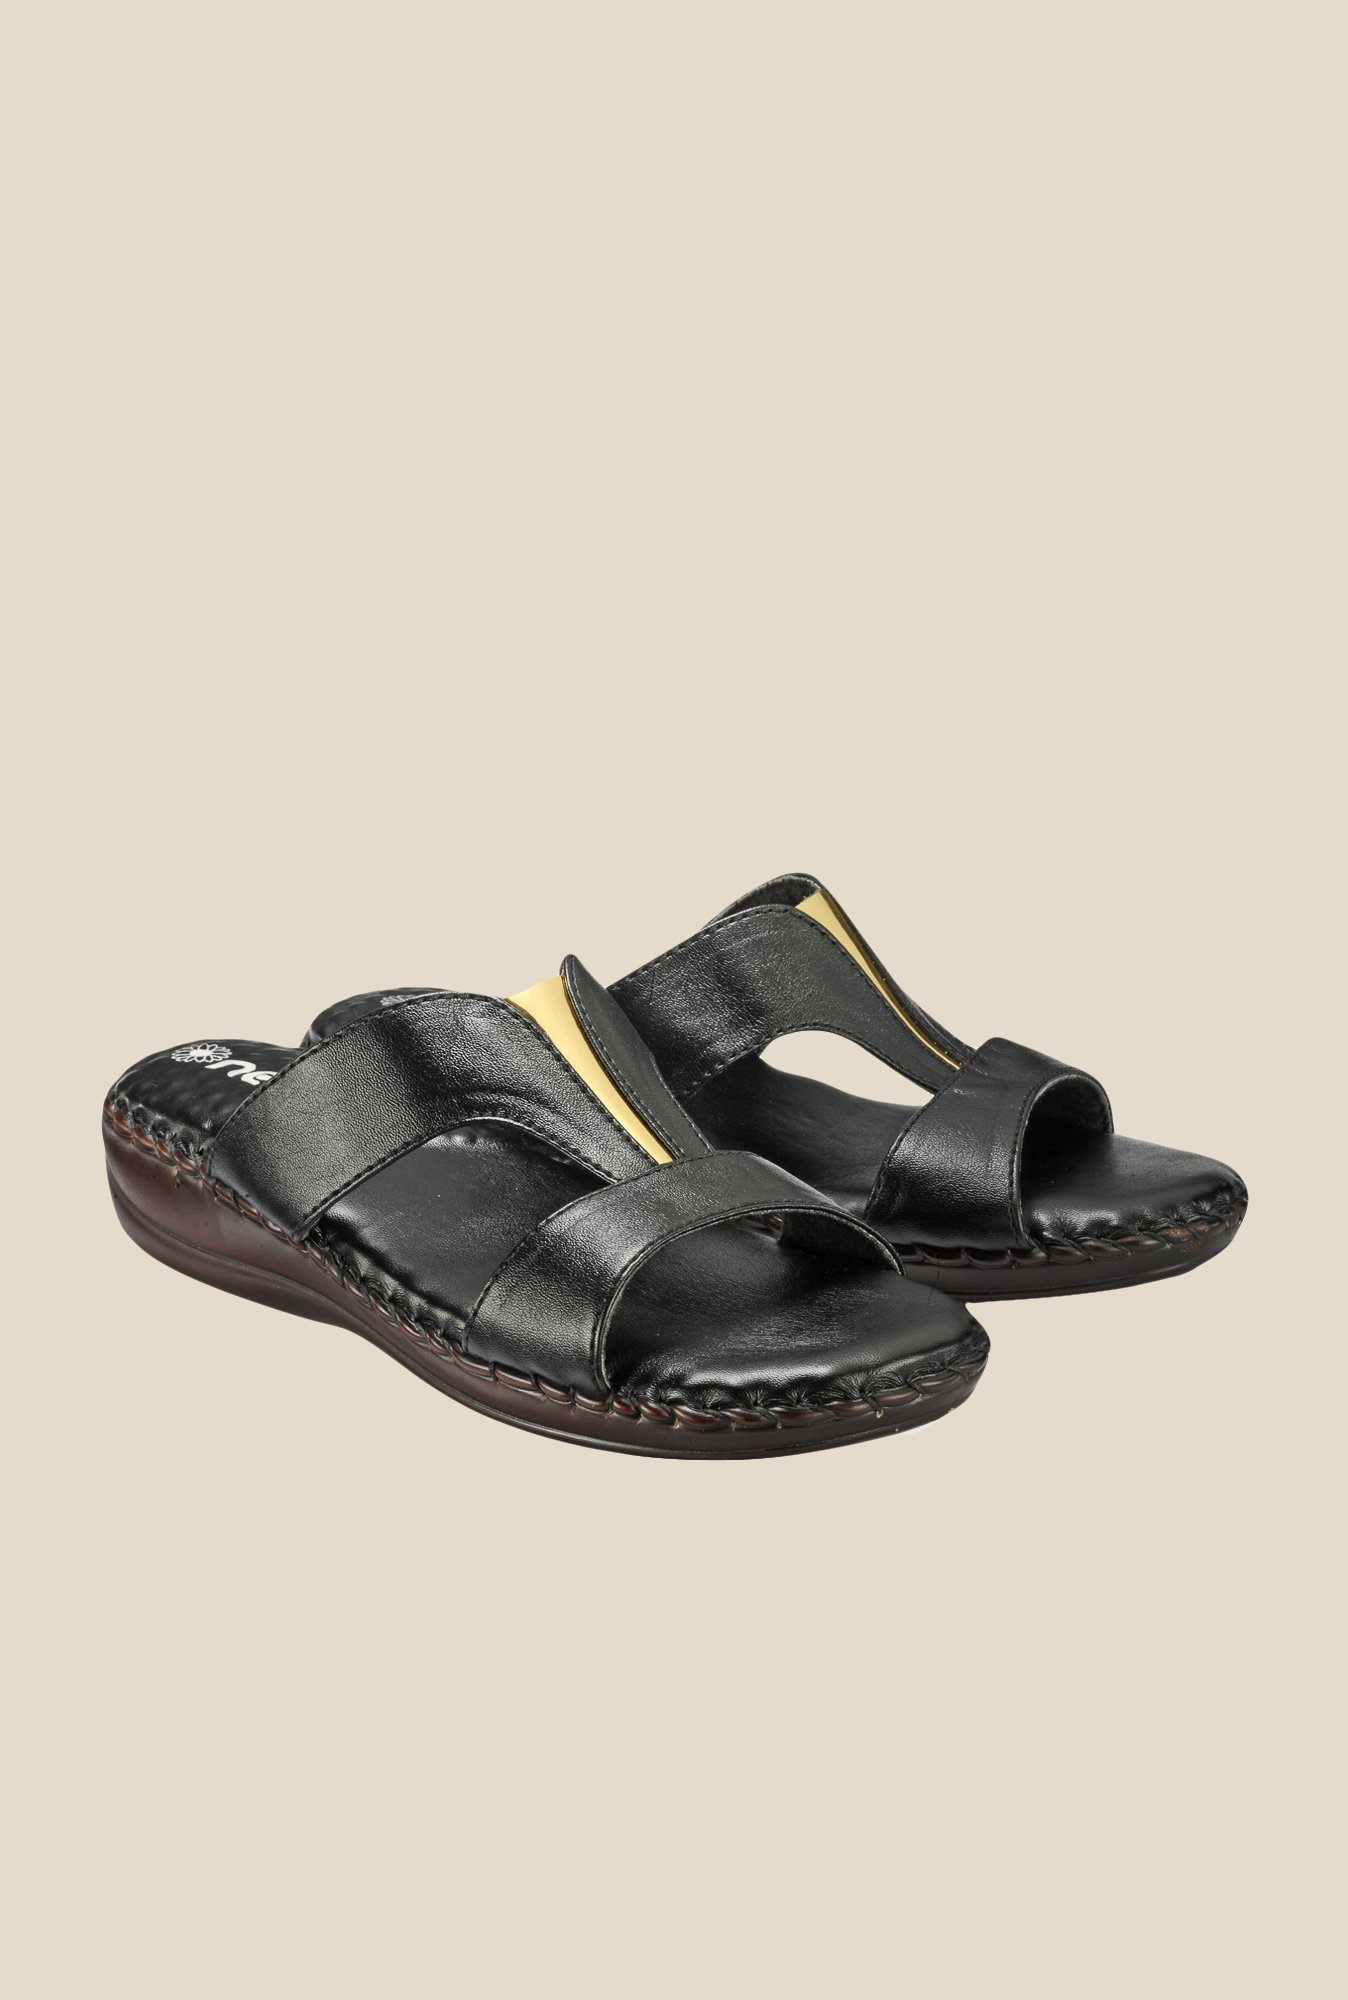 Nell Black Slide Sandals